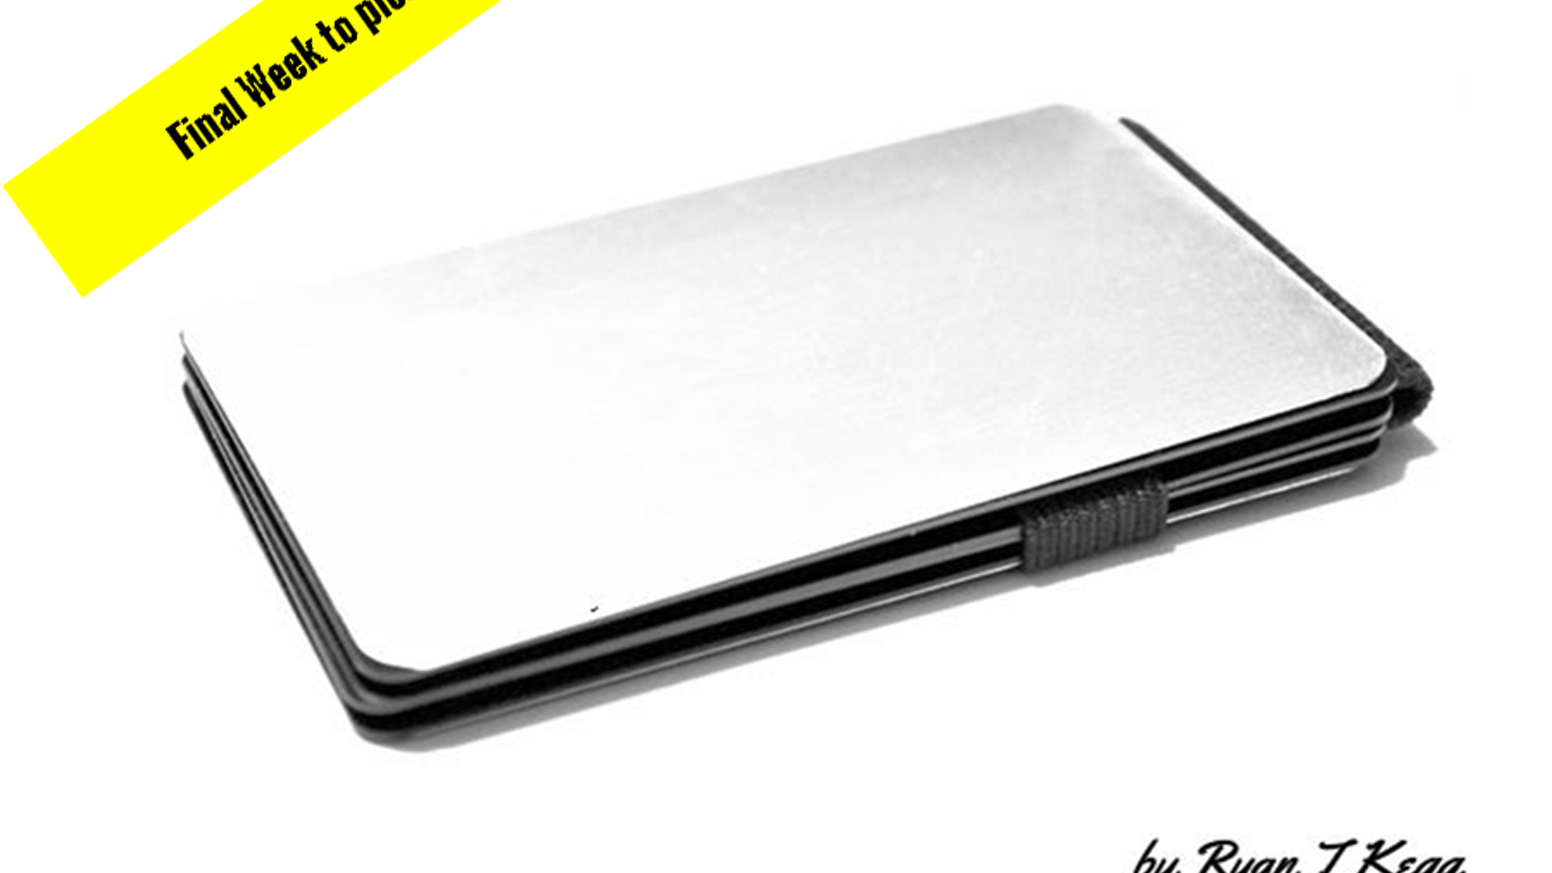 cf13a1412d50 Sta-Tech Wallet : Slim Wallet and Universal Smartphone Tool. by Ryan ...